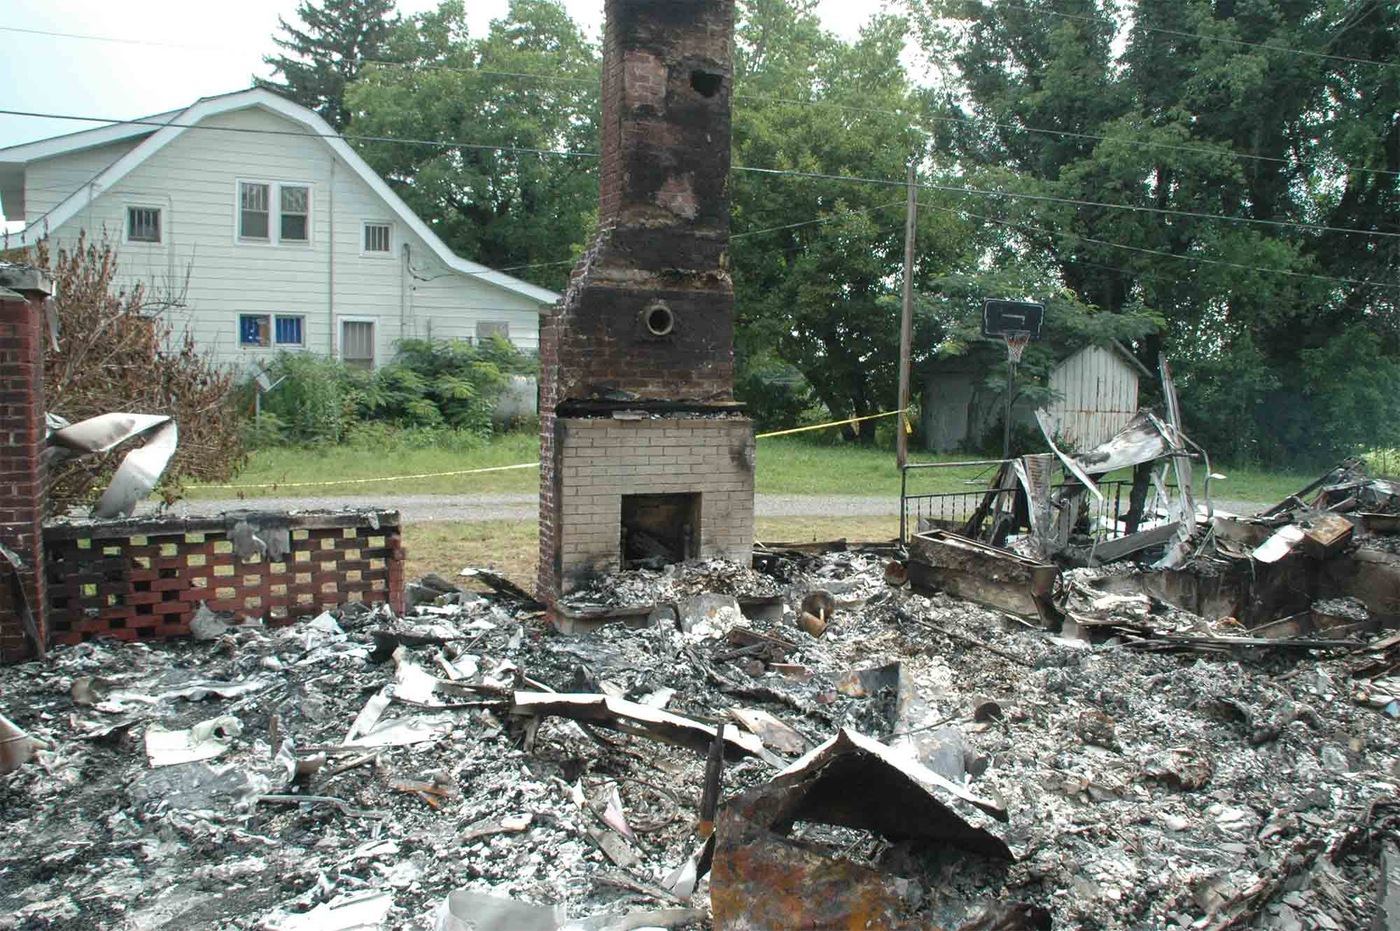 Burned-out remains of Steve and Brandi Pritchard's rented home in Columbia, Kentucky, following a fire they set to collect insurance proceeds.